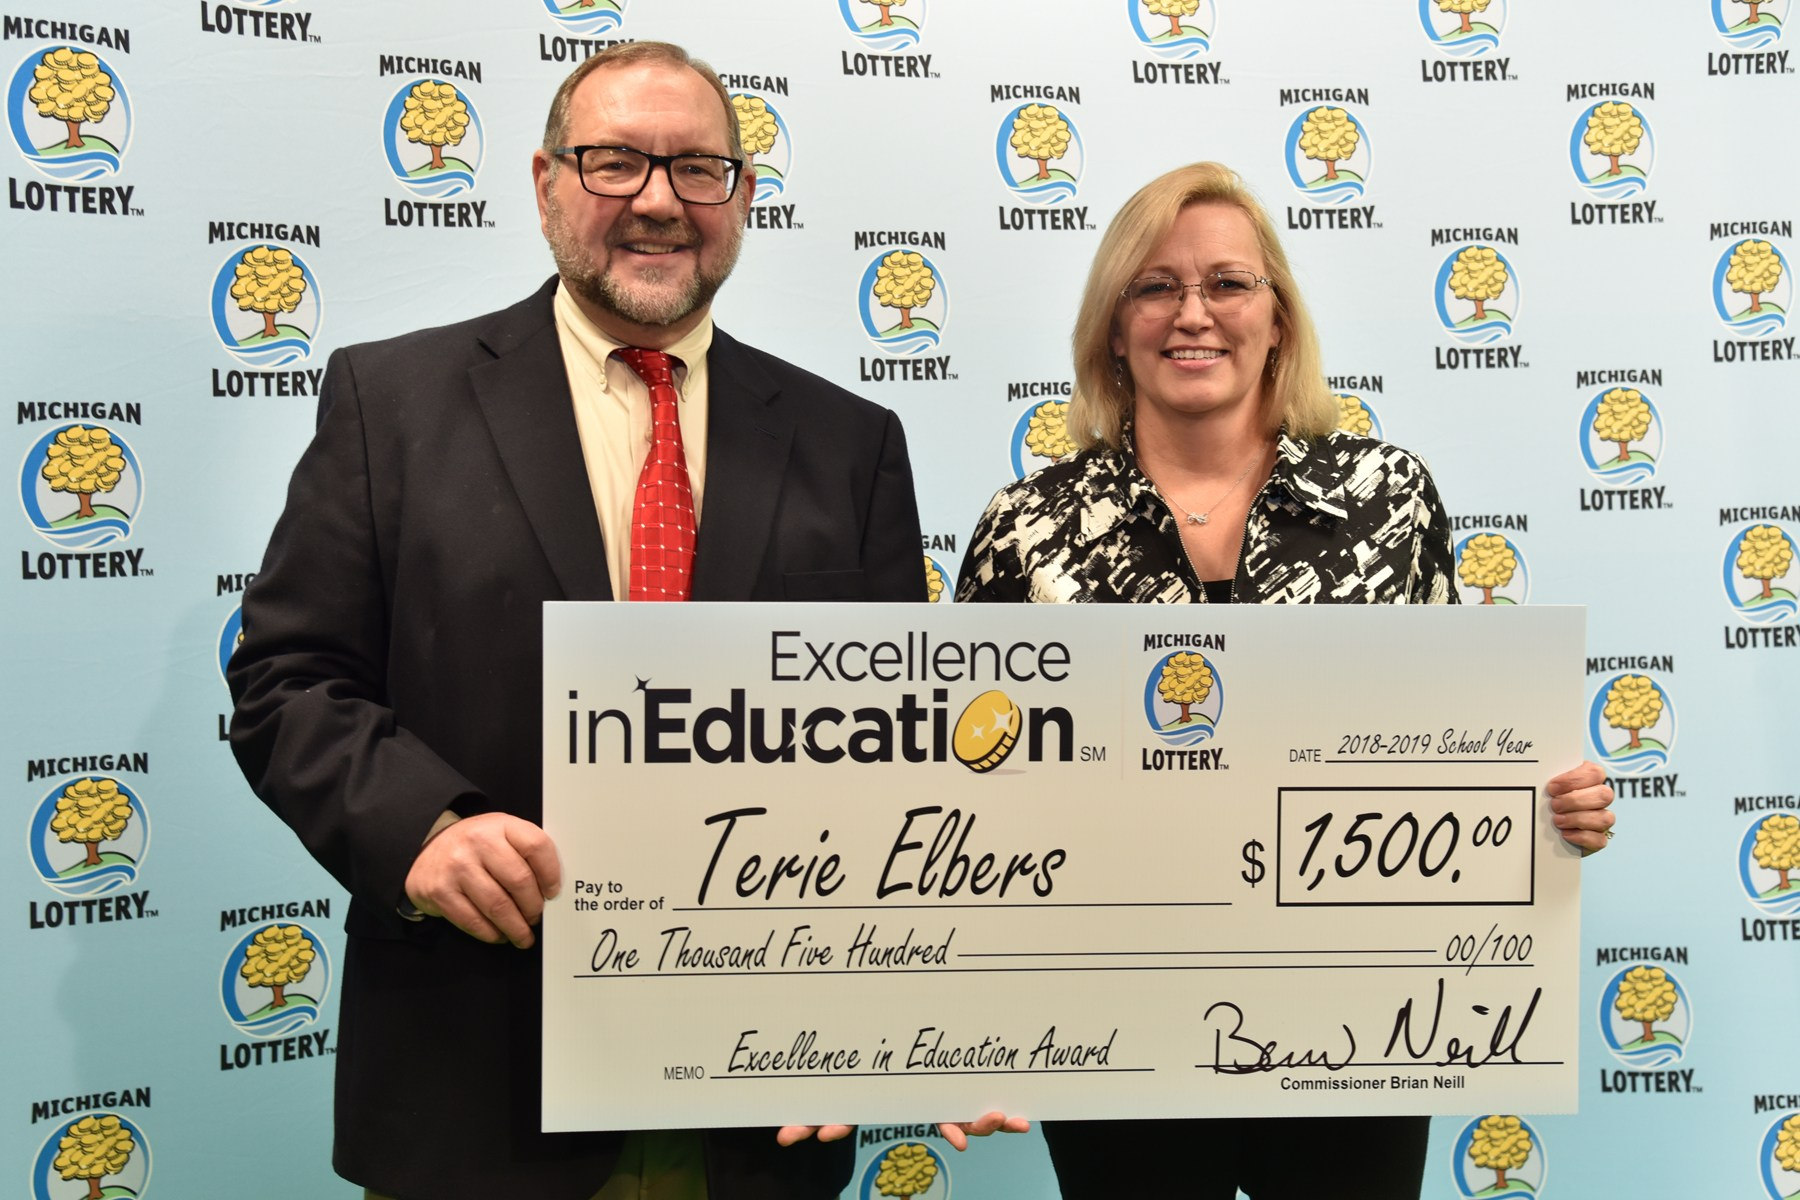 Terie Elbers Michigan Lottery award recipient